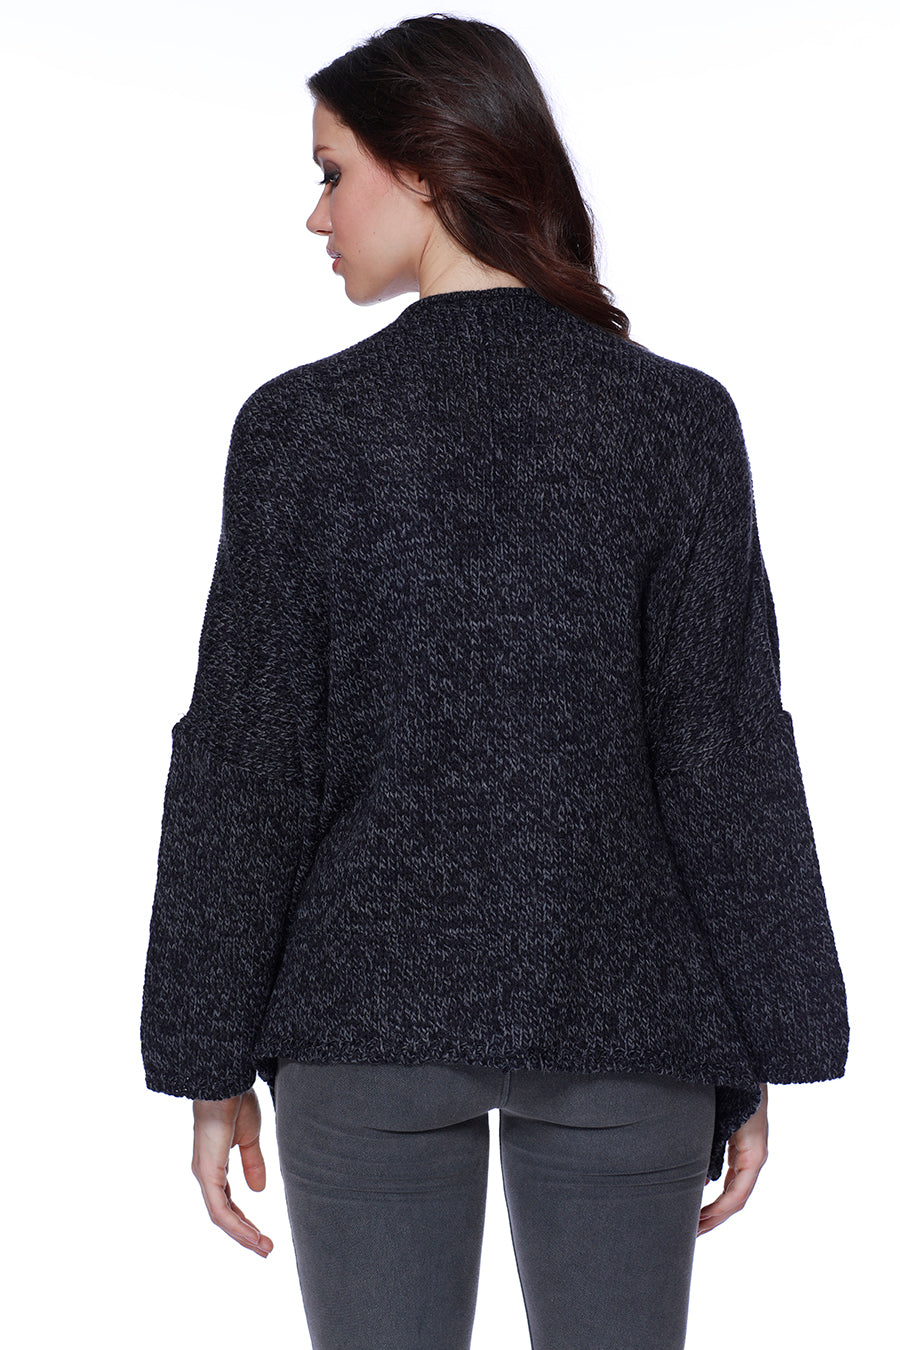 Camille Short Open Cardigan W/ Pockets